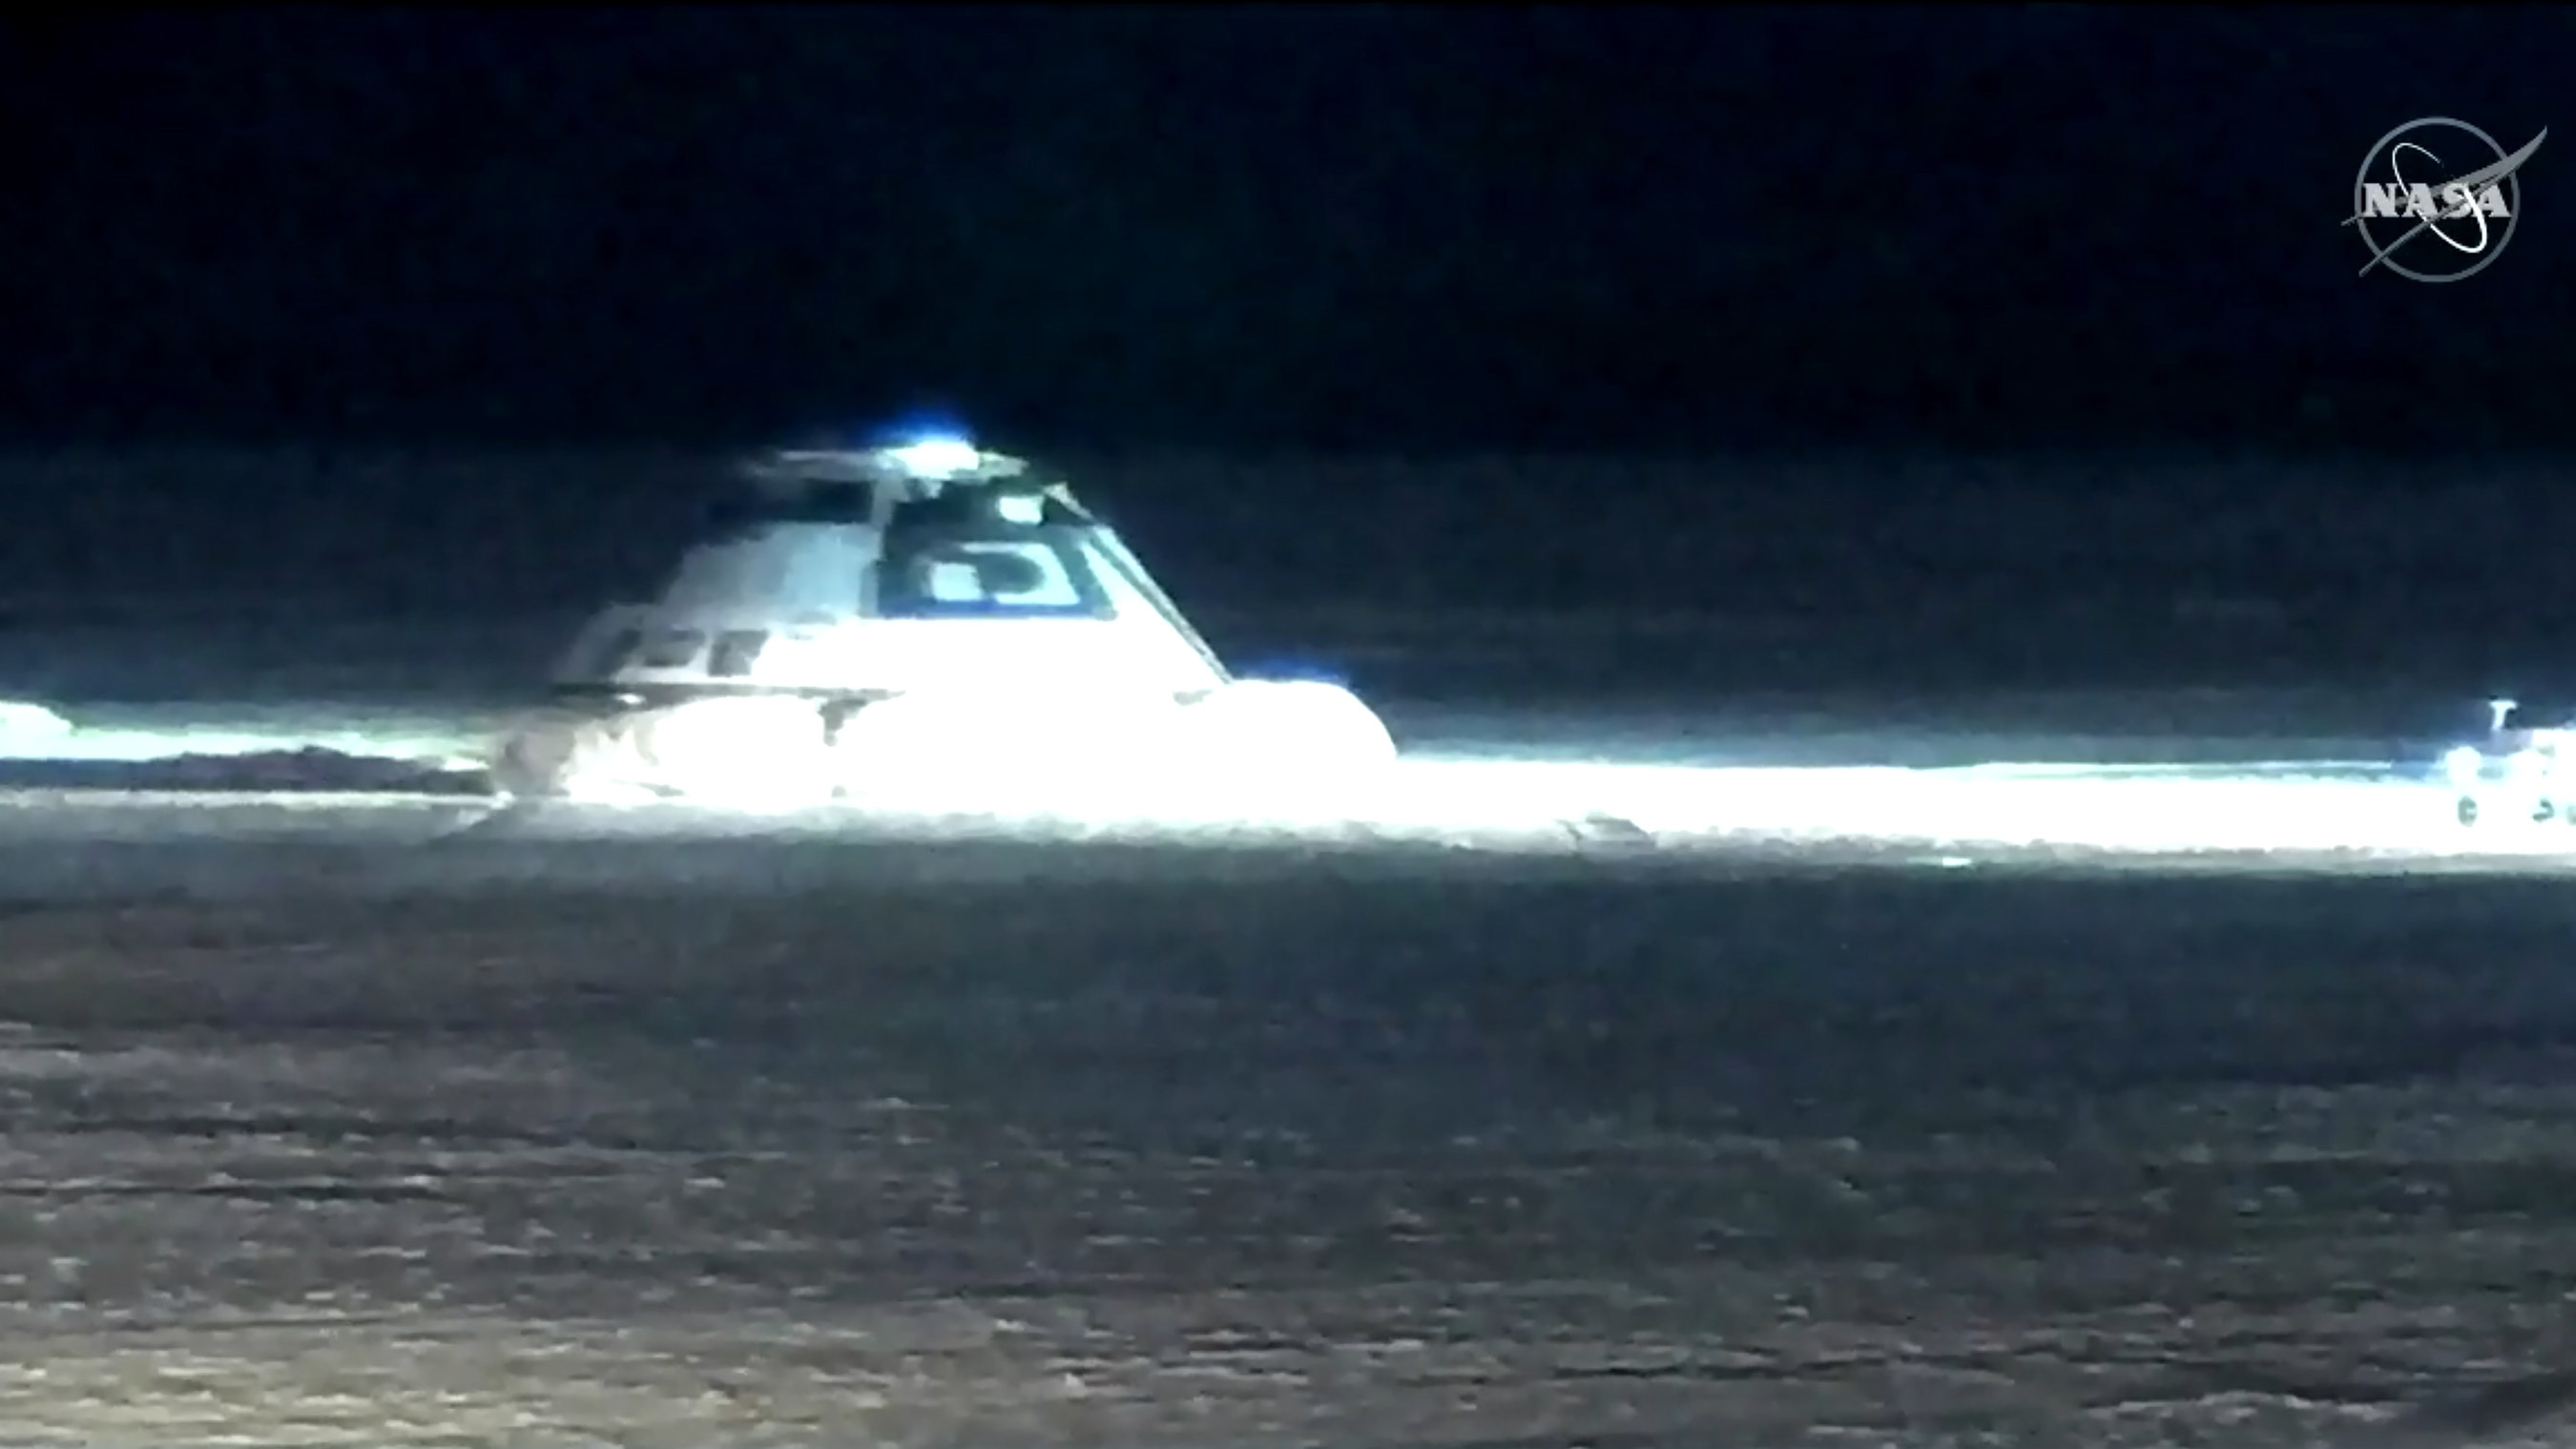 Beoing's CST-100 Starliner returns to Earth after shortened mission